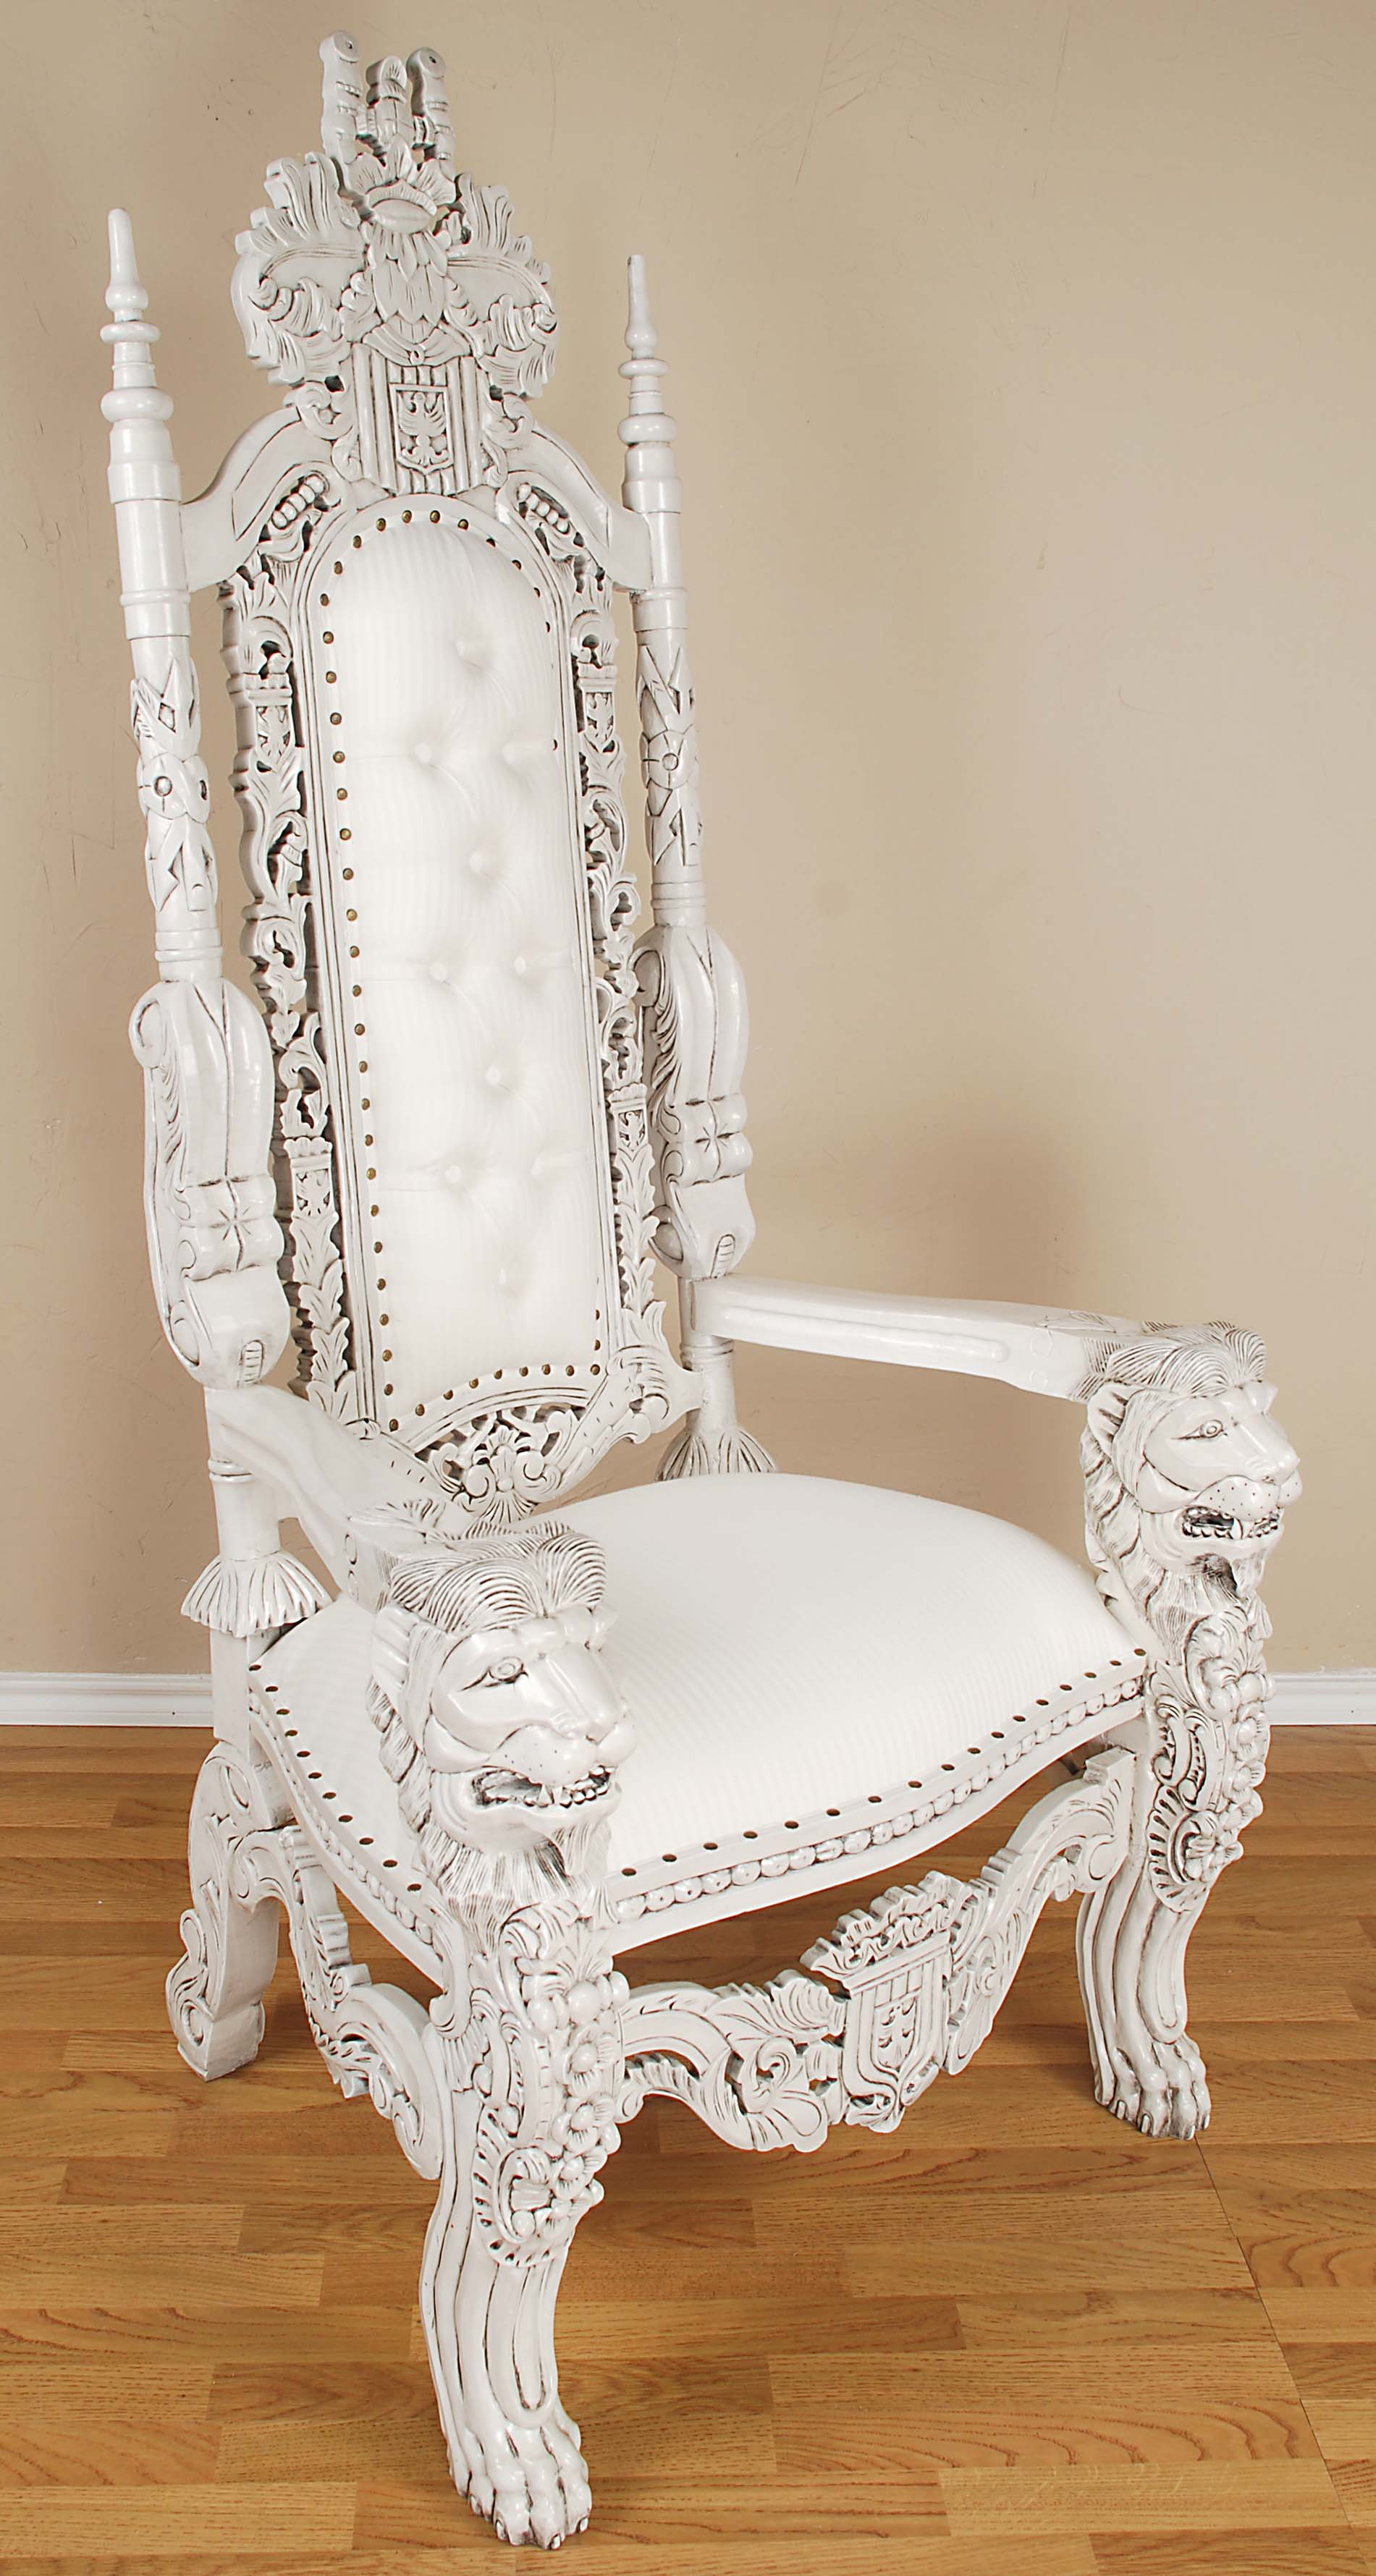 game of thrones chair for sale dining room table cushions president snow 39s throne can be yours 995 00 the